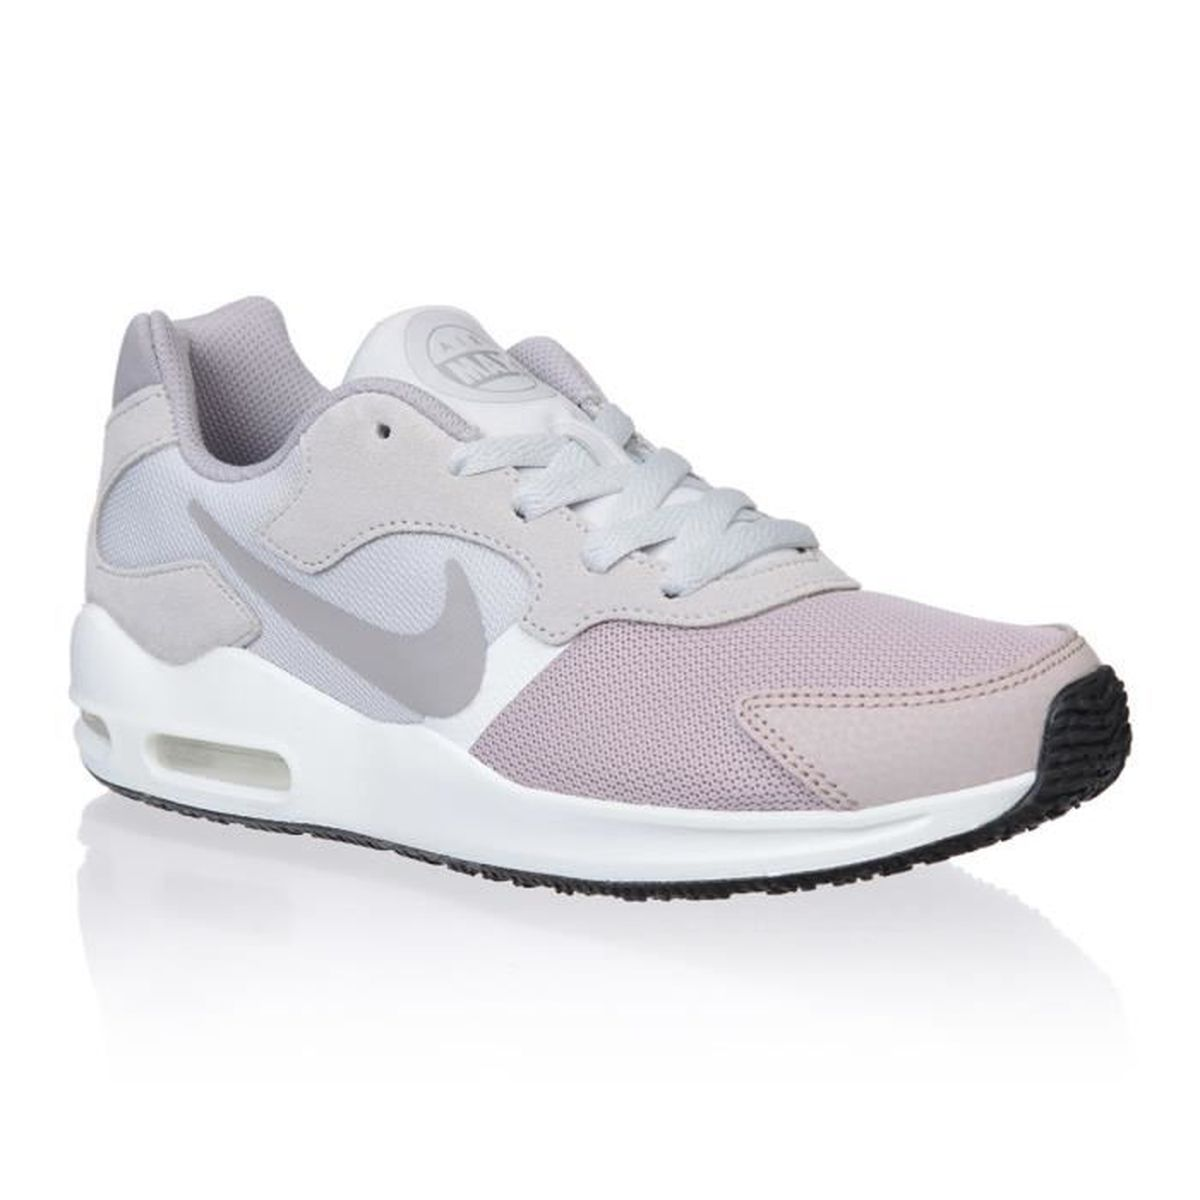 outlet store 0b4c8 b1afc NIKE Sneakers Air Max Guile - Femme - Blanc